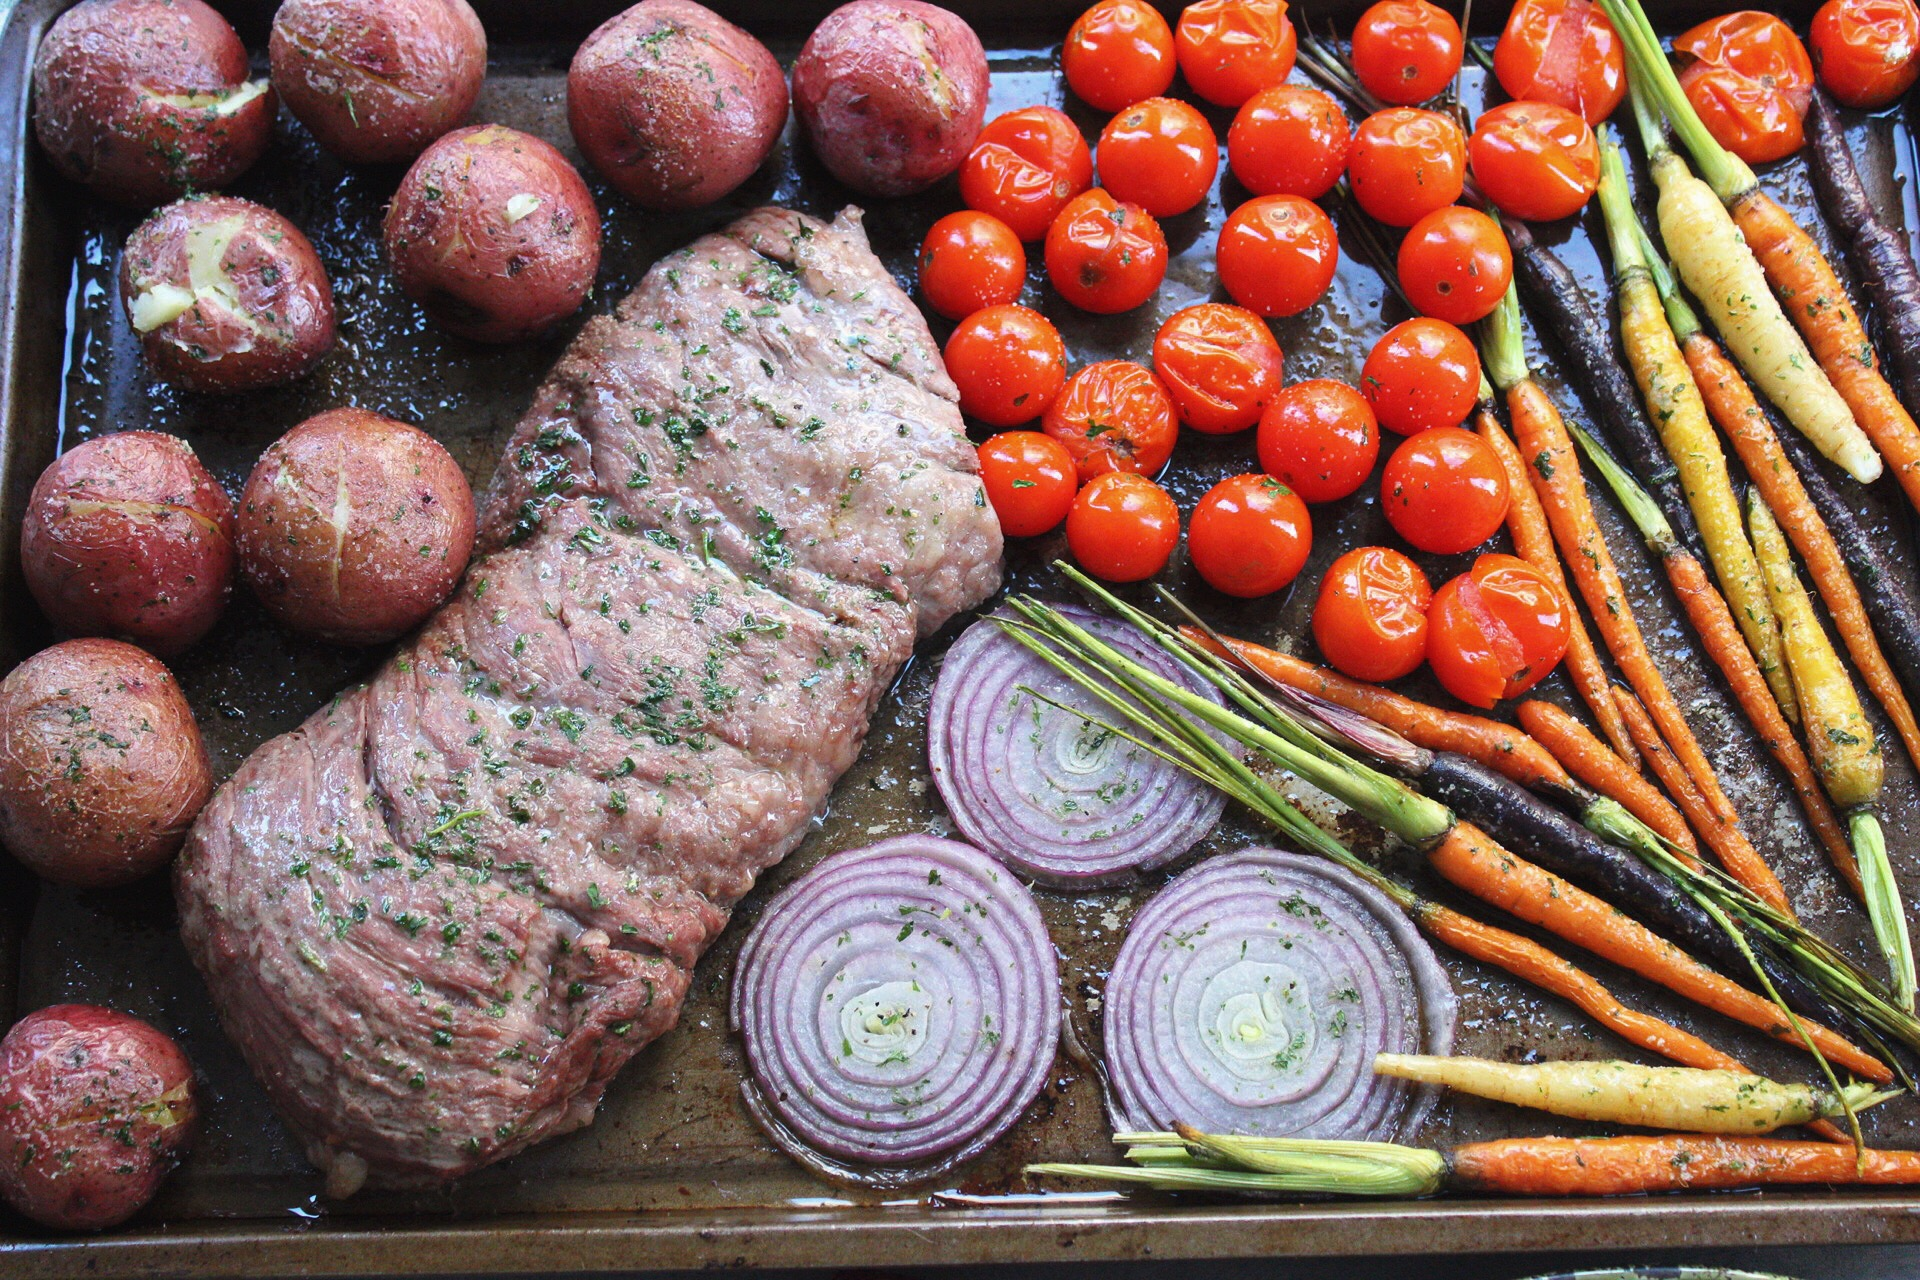 Butter Herb Steak and Veggies Sheet Pan Meal: Paleo, Whole30 & 30 Minutes!